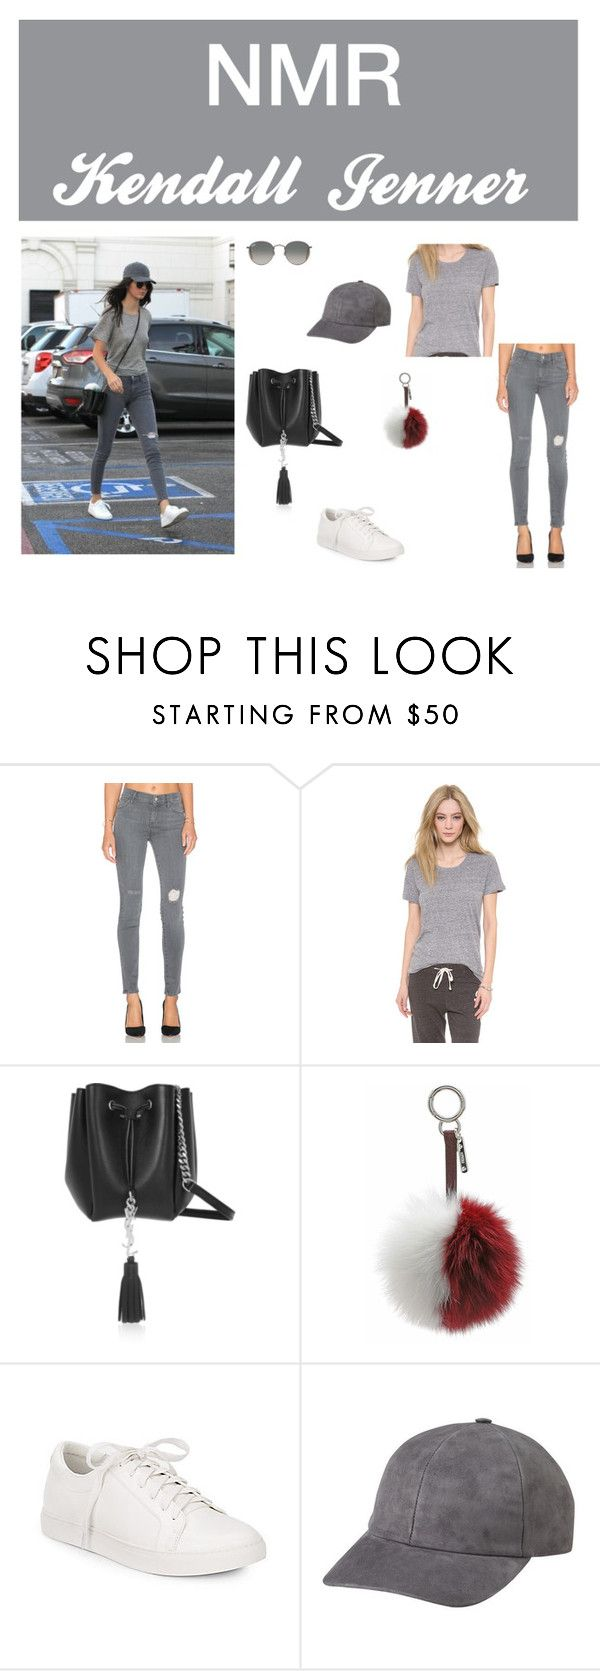 """Outfit #189"" by nmr135 ❤ liked on Polyvore featuring Koral, Monrow, Yves Saint Laurent, Fendi, Kenneth Cole, Ray-Ban, kendalljenner and nmr"